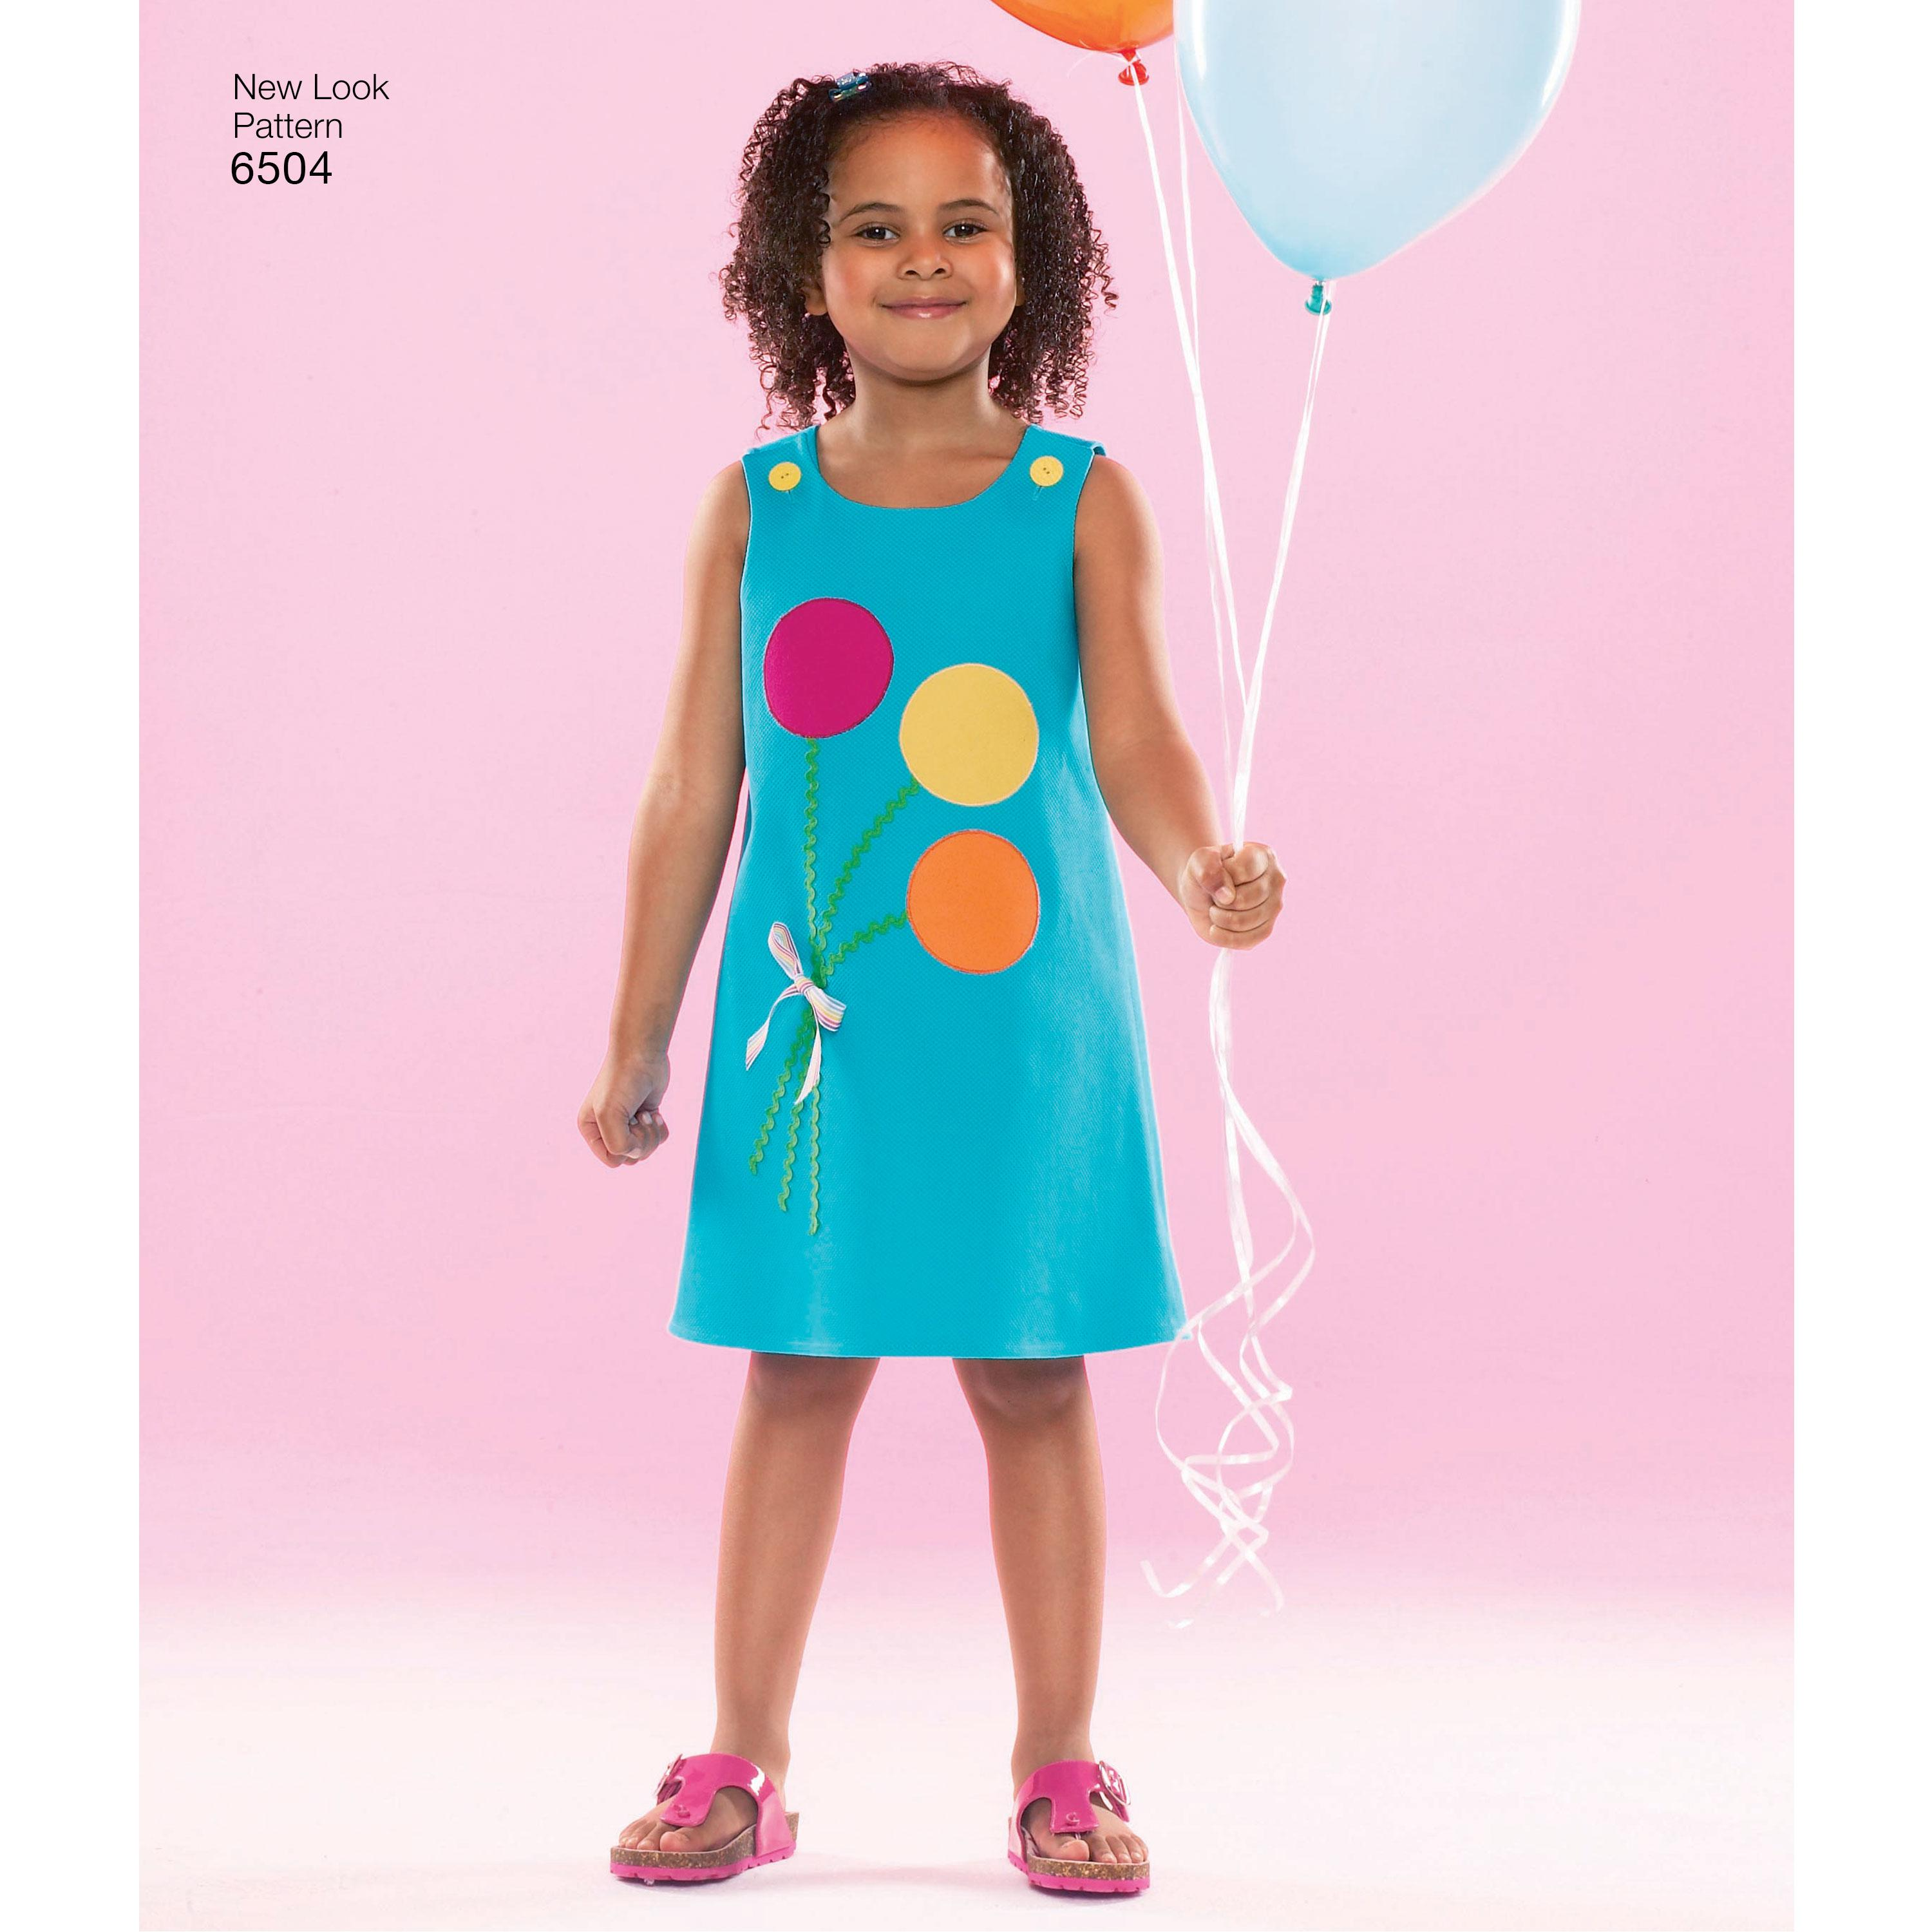 NewLook N6504 Child Dresses